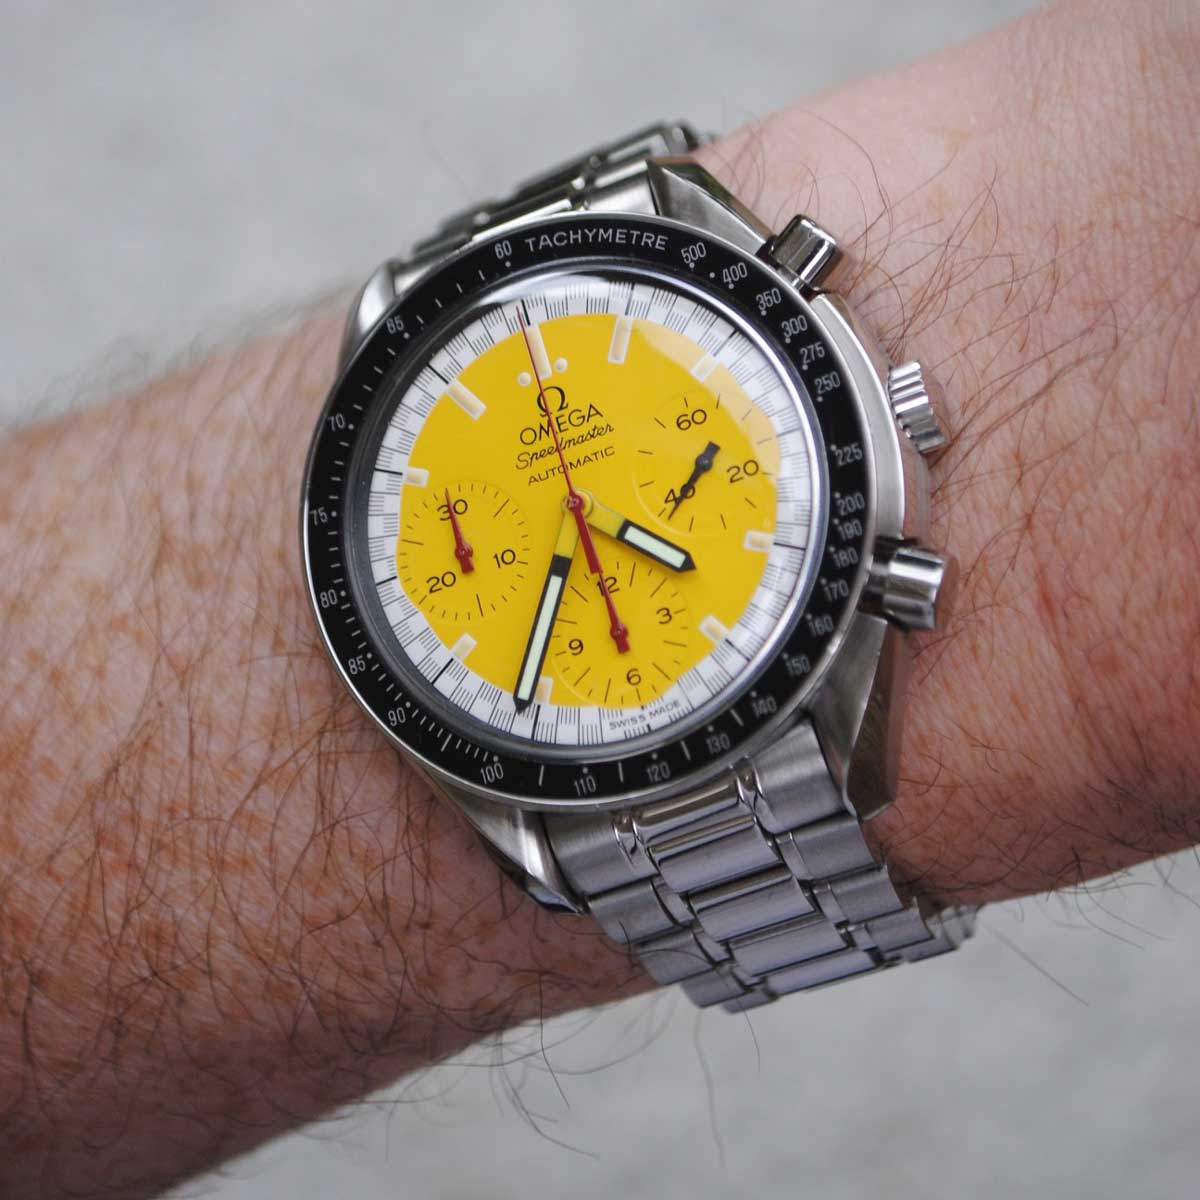 King Nerd was attracted to the bright yellow colour of the dial